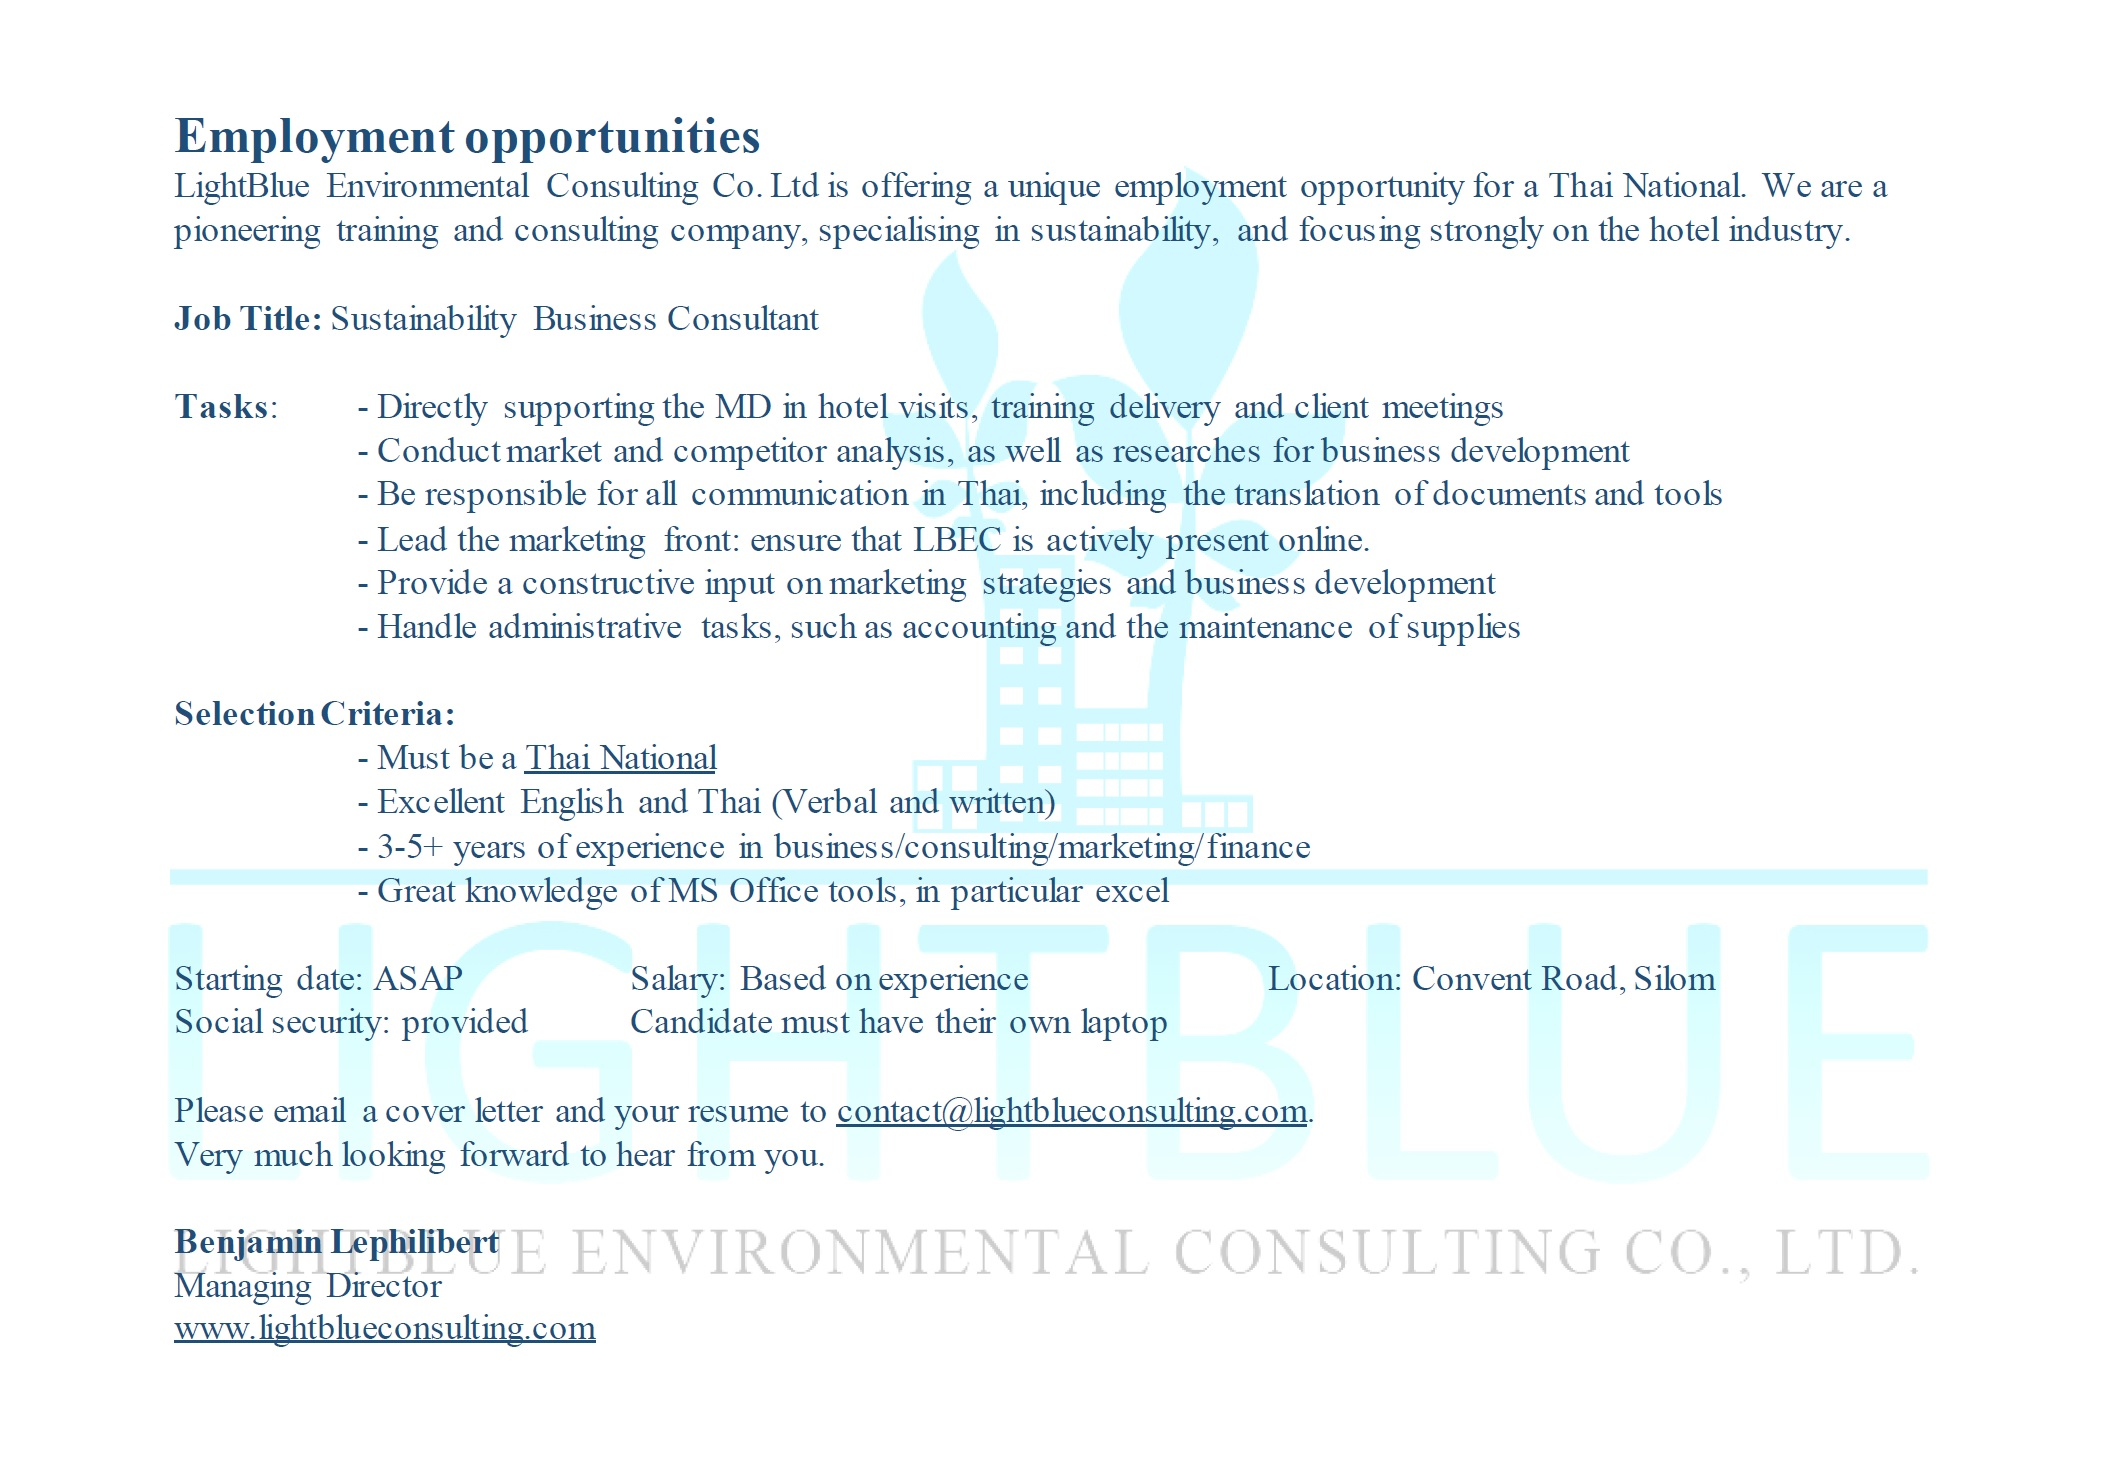 WANTED: Sustainability Business Consultant, Thai national